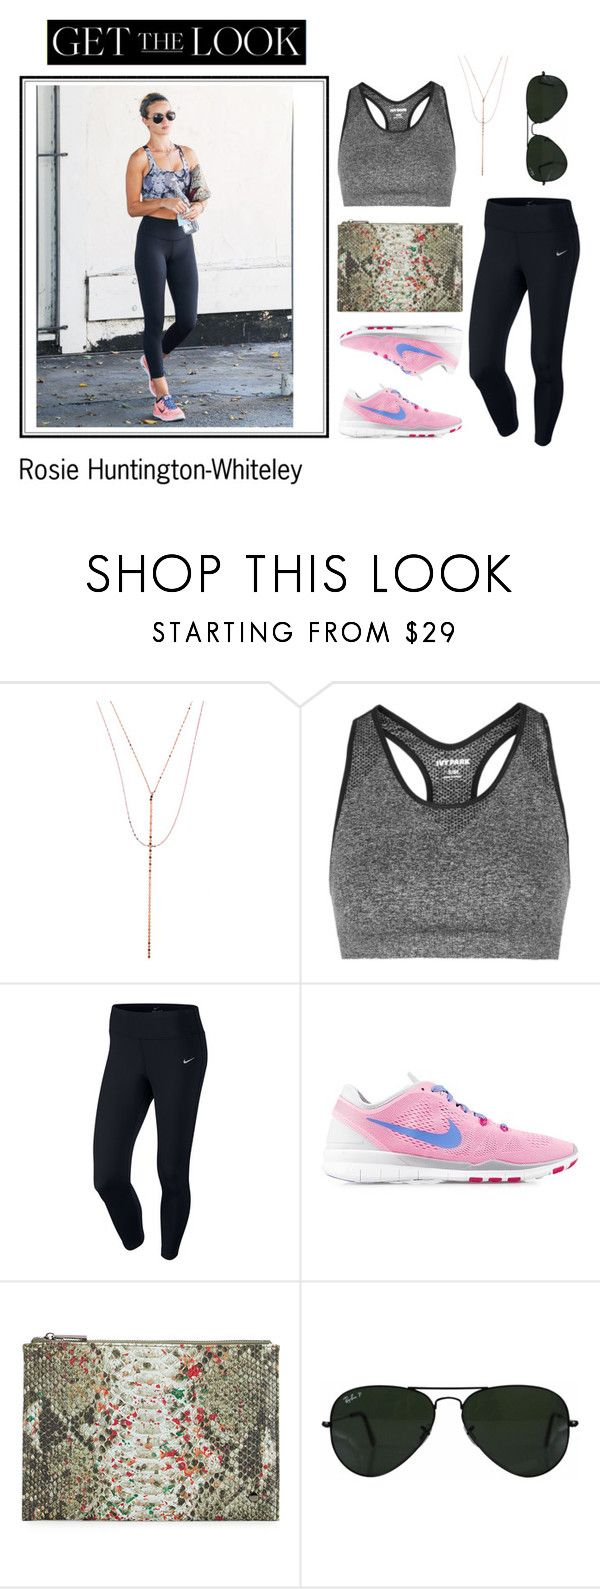 """""""Rosie Huntington-Whiteley"""" by marce104 ❤ liked on Polyvore featuring Lana, Topshop, NIKE, Neiman Marcus and Ray-Ban"""